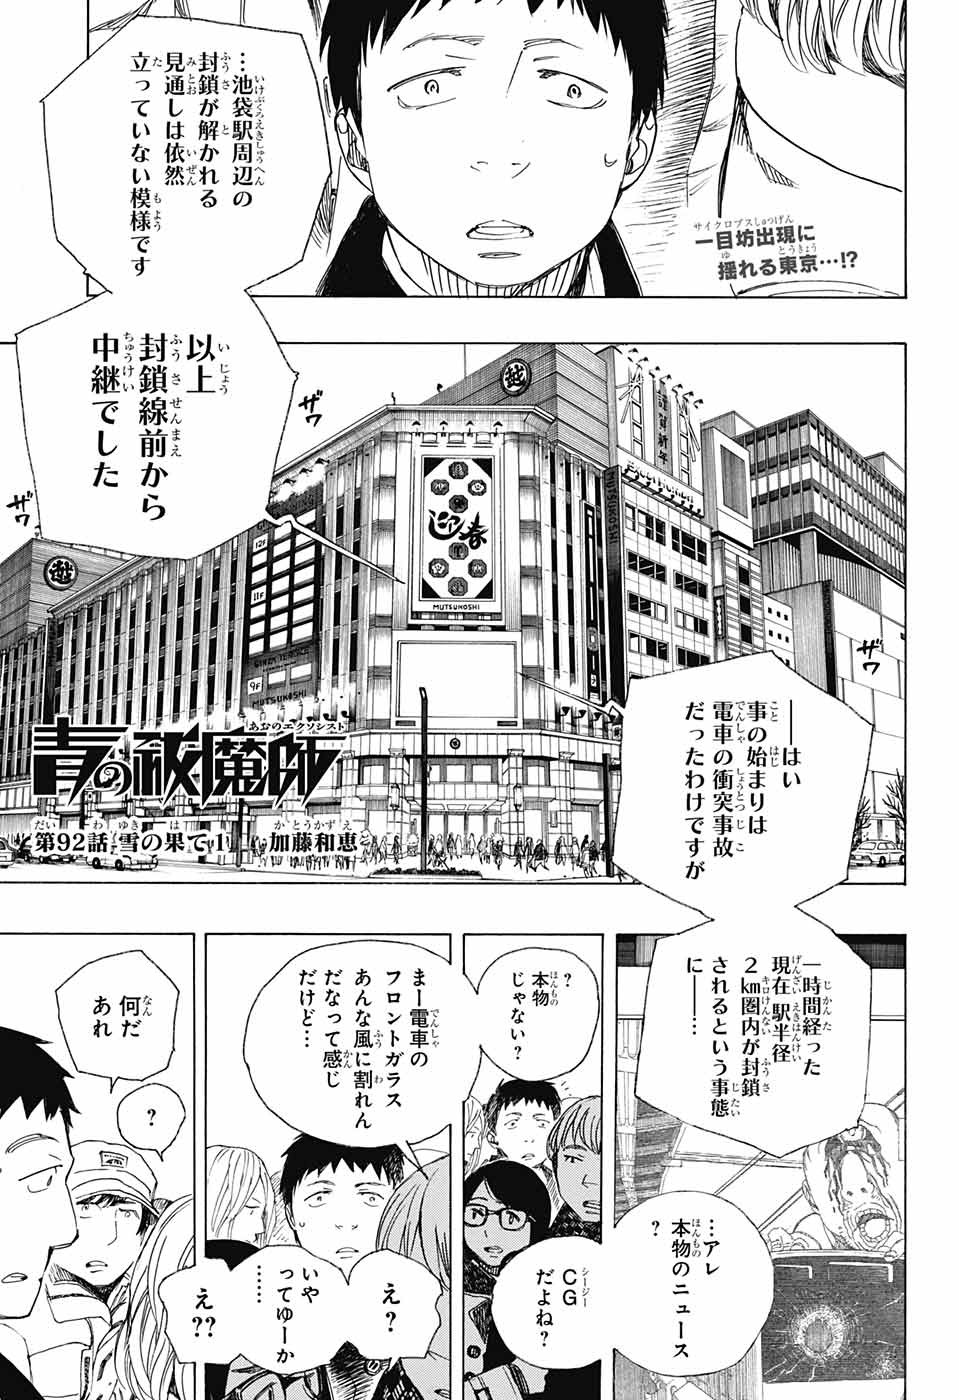 Ao no Exorcist - Chapter 92 - Page 1